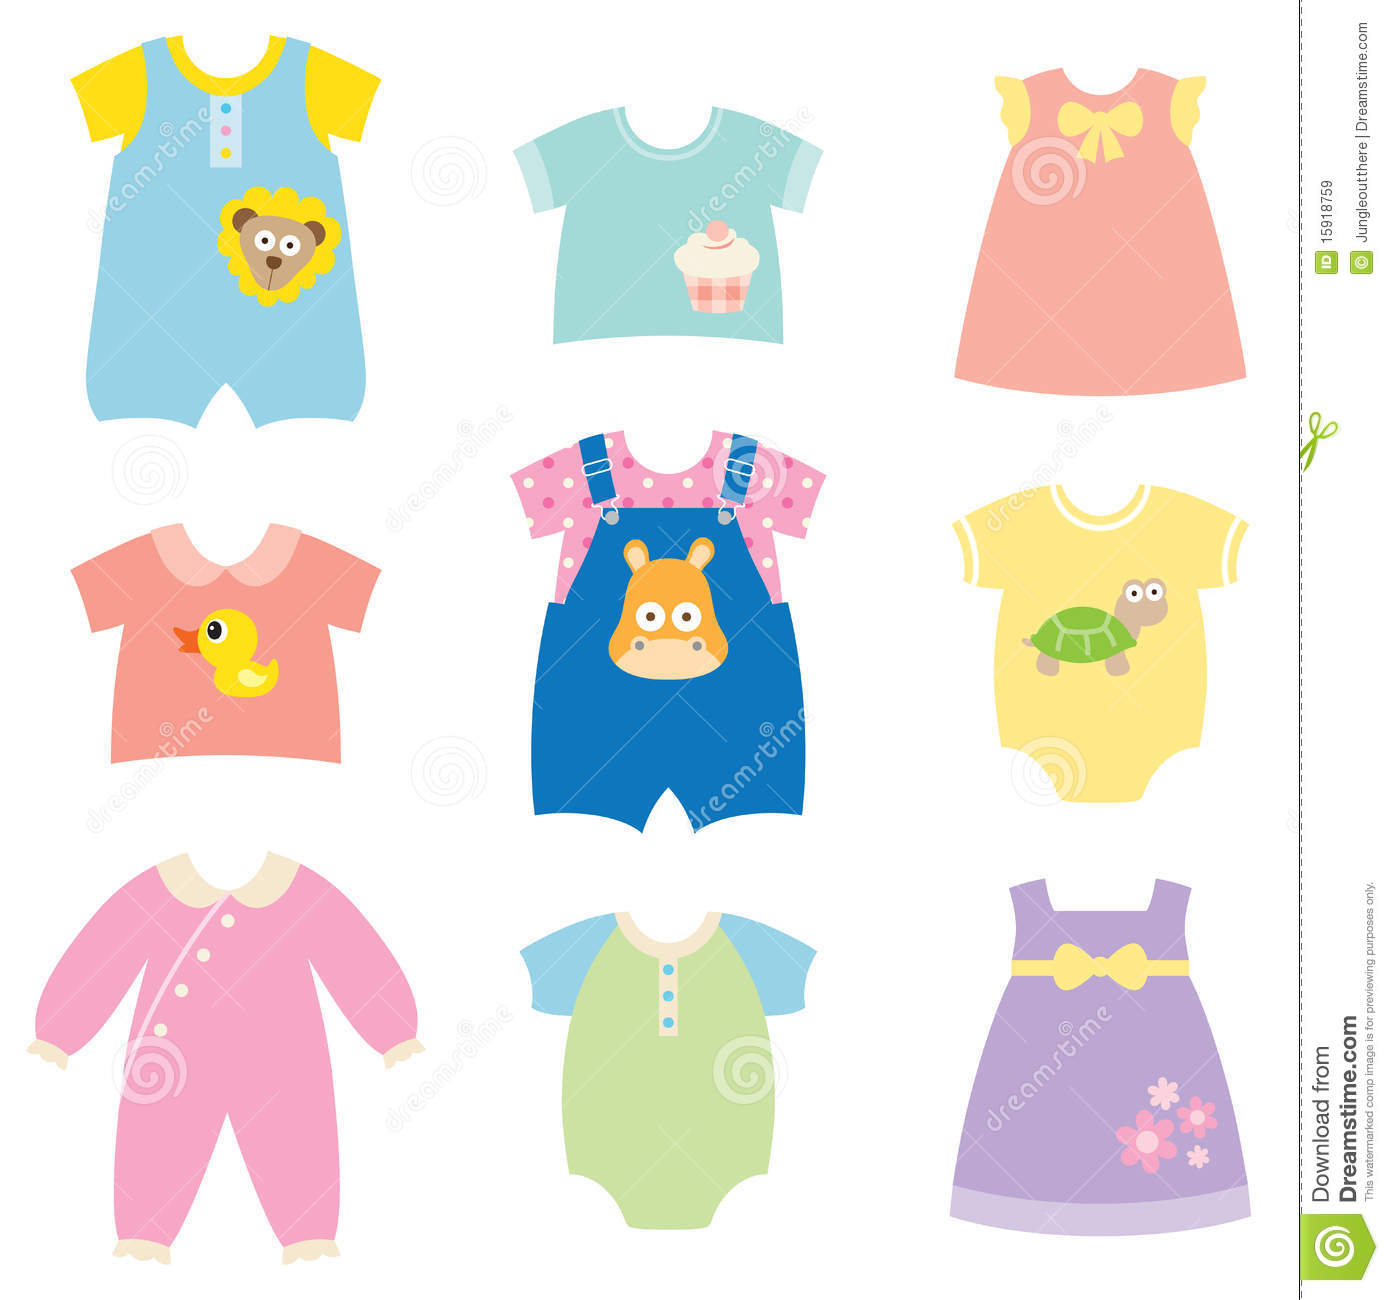 Pajamas clipart baby doll clothes, Pajamas baby doll clothes.